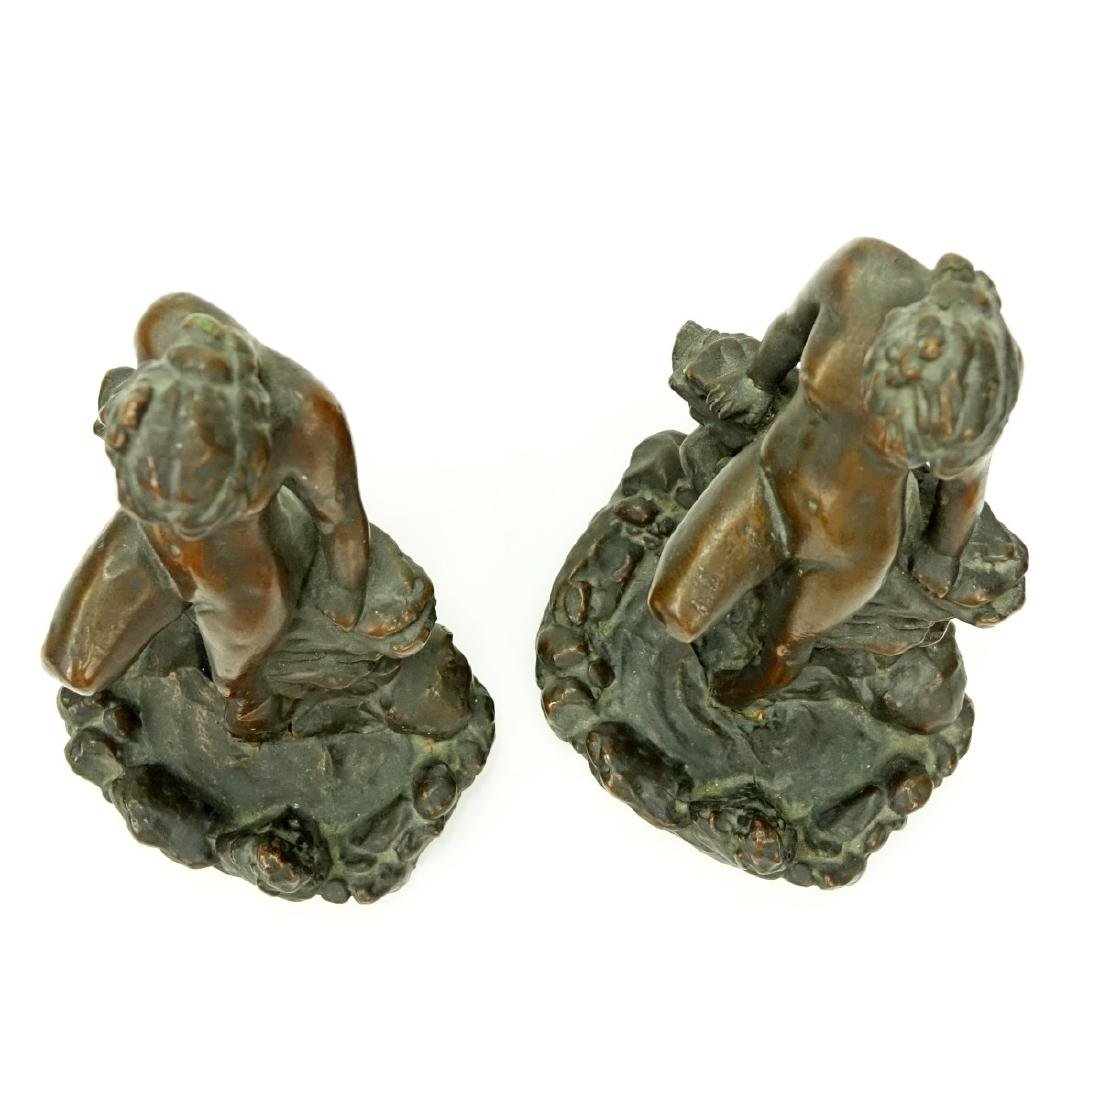 Pair KBW Bronze Clad Bookends Nude At Pond - 2